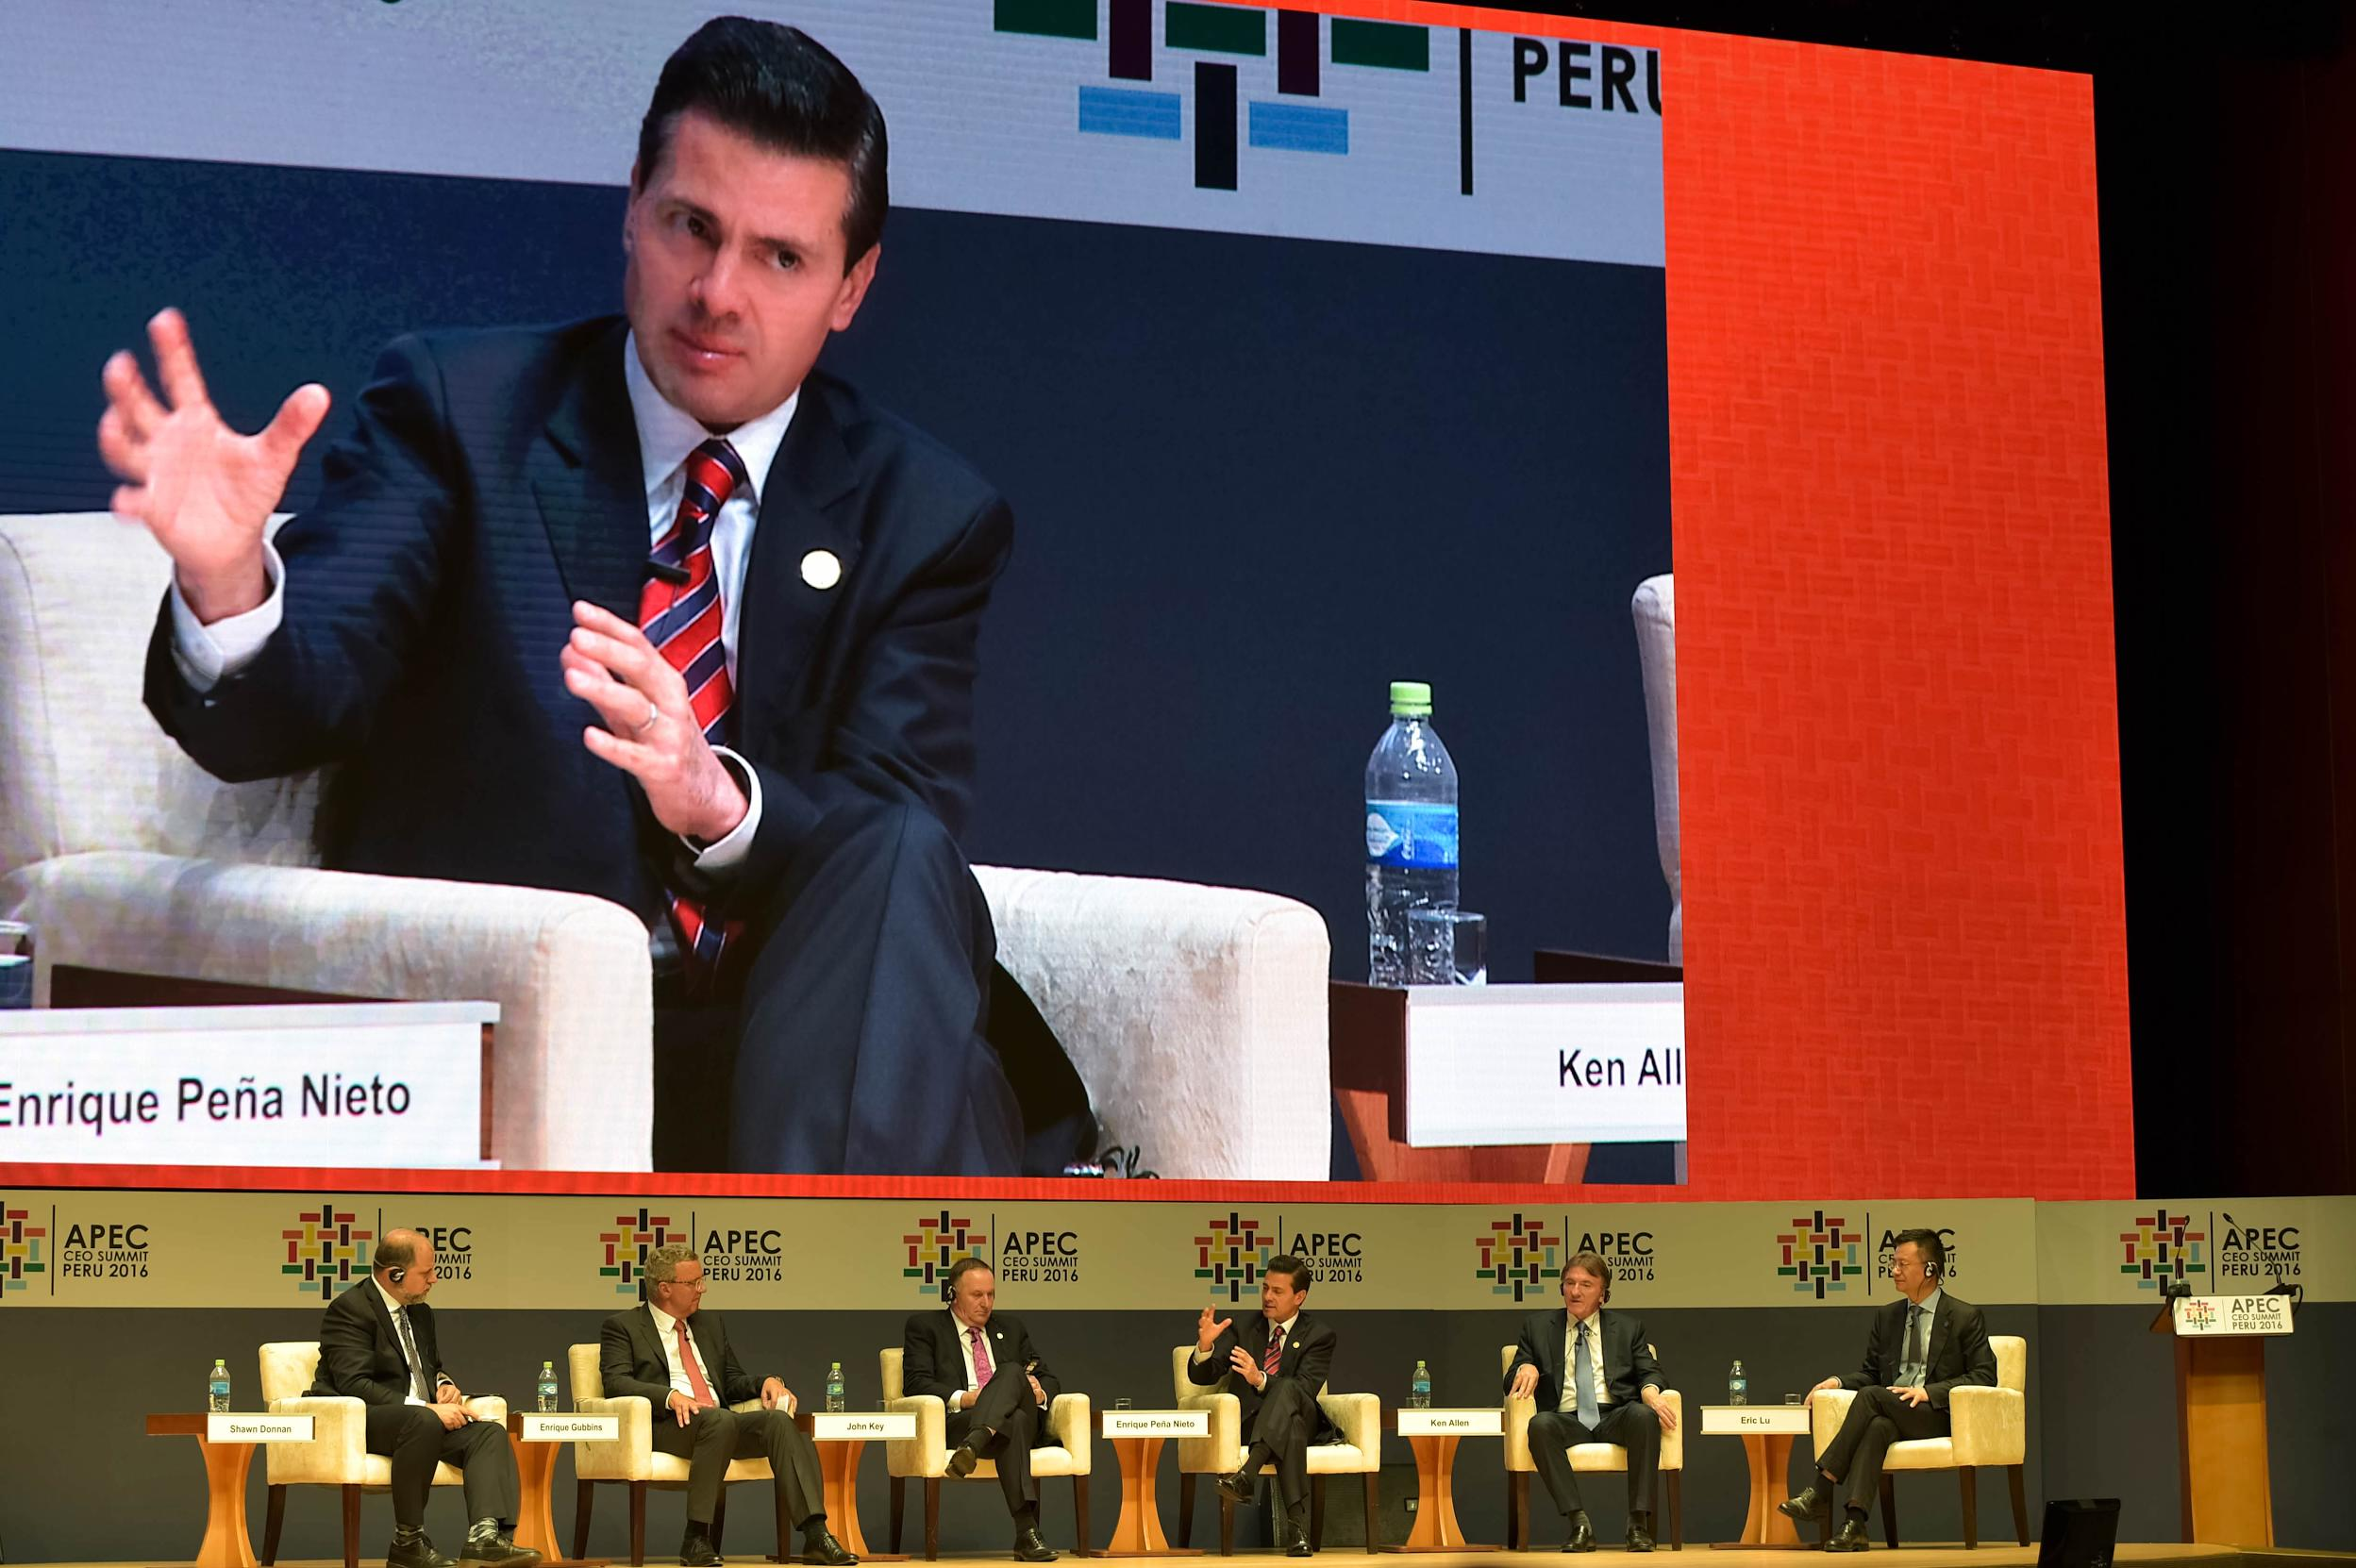 """More than 20 years after its entry into force, he said, """"We have learned that NAFTA can be modernized; elements that were not considered when the agreement was signed can be incorporated"""". EPN"""